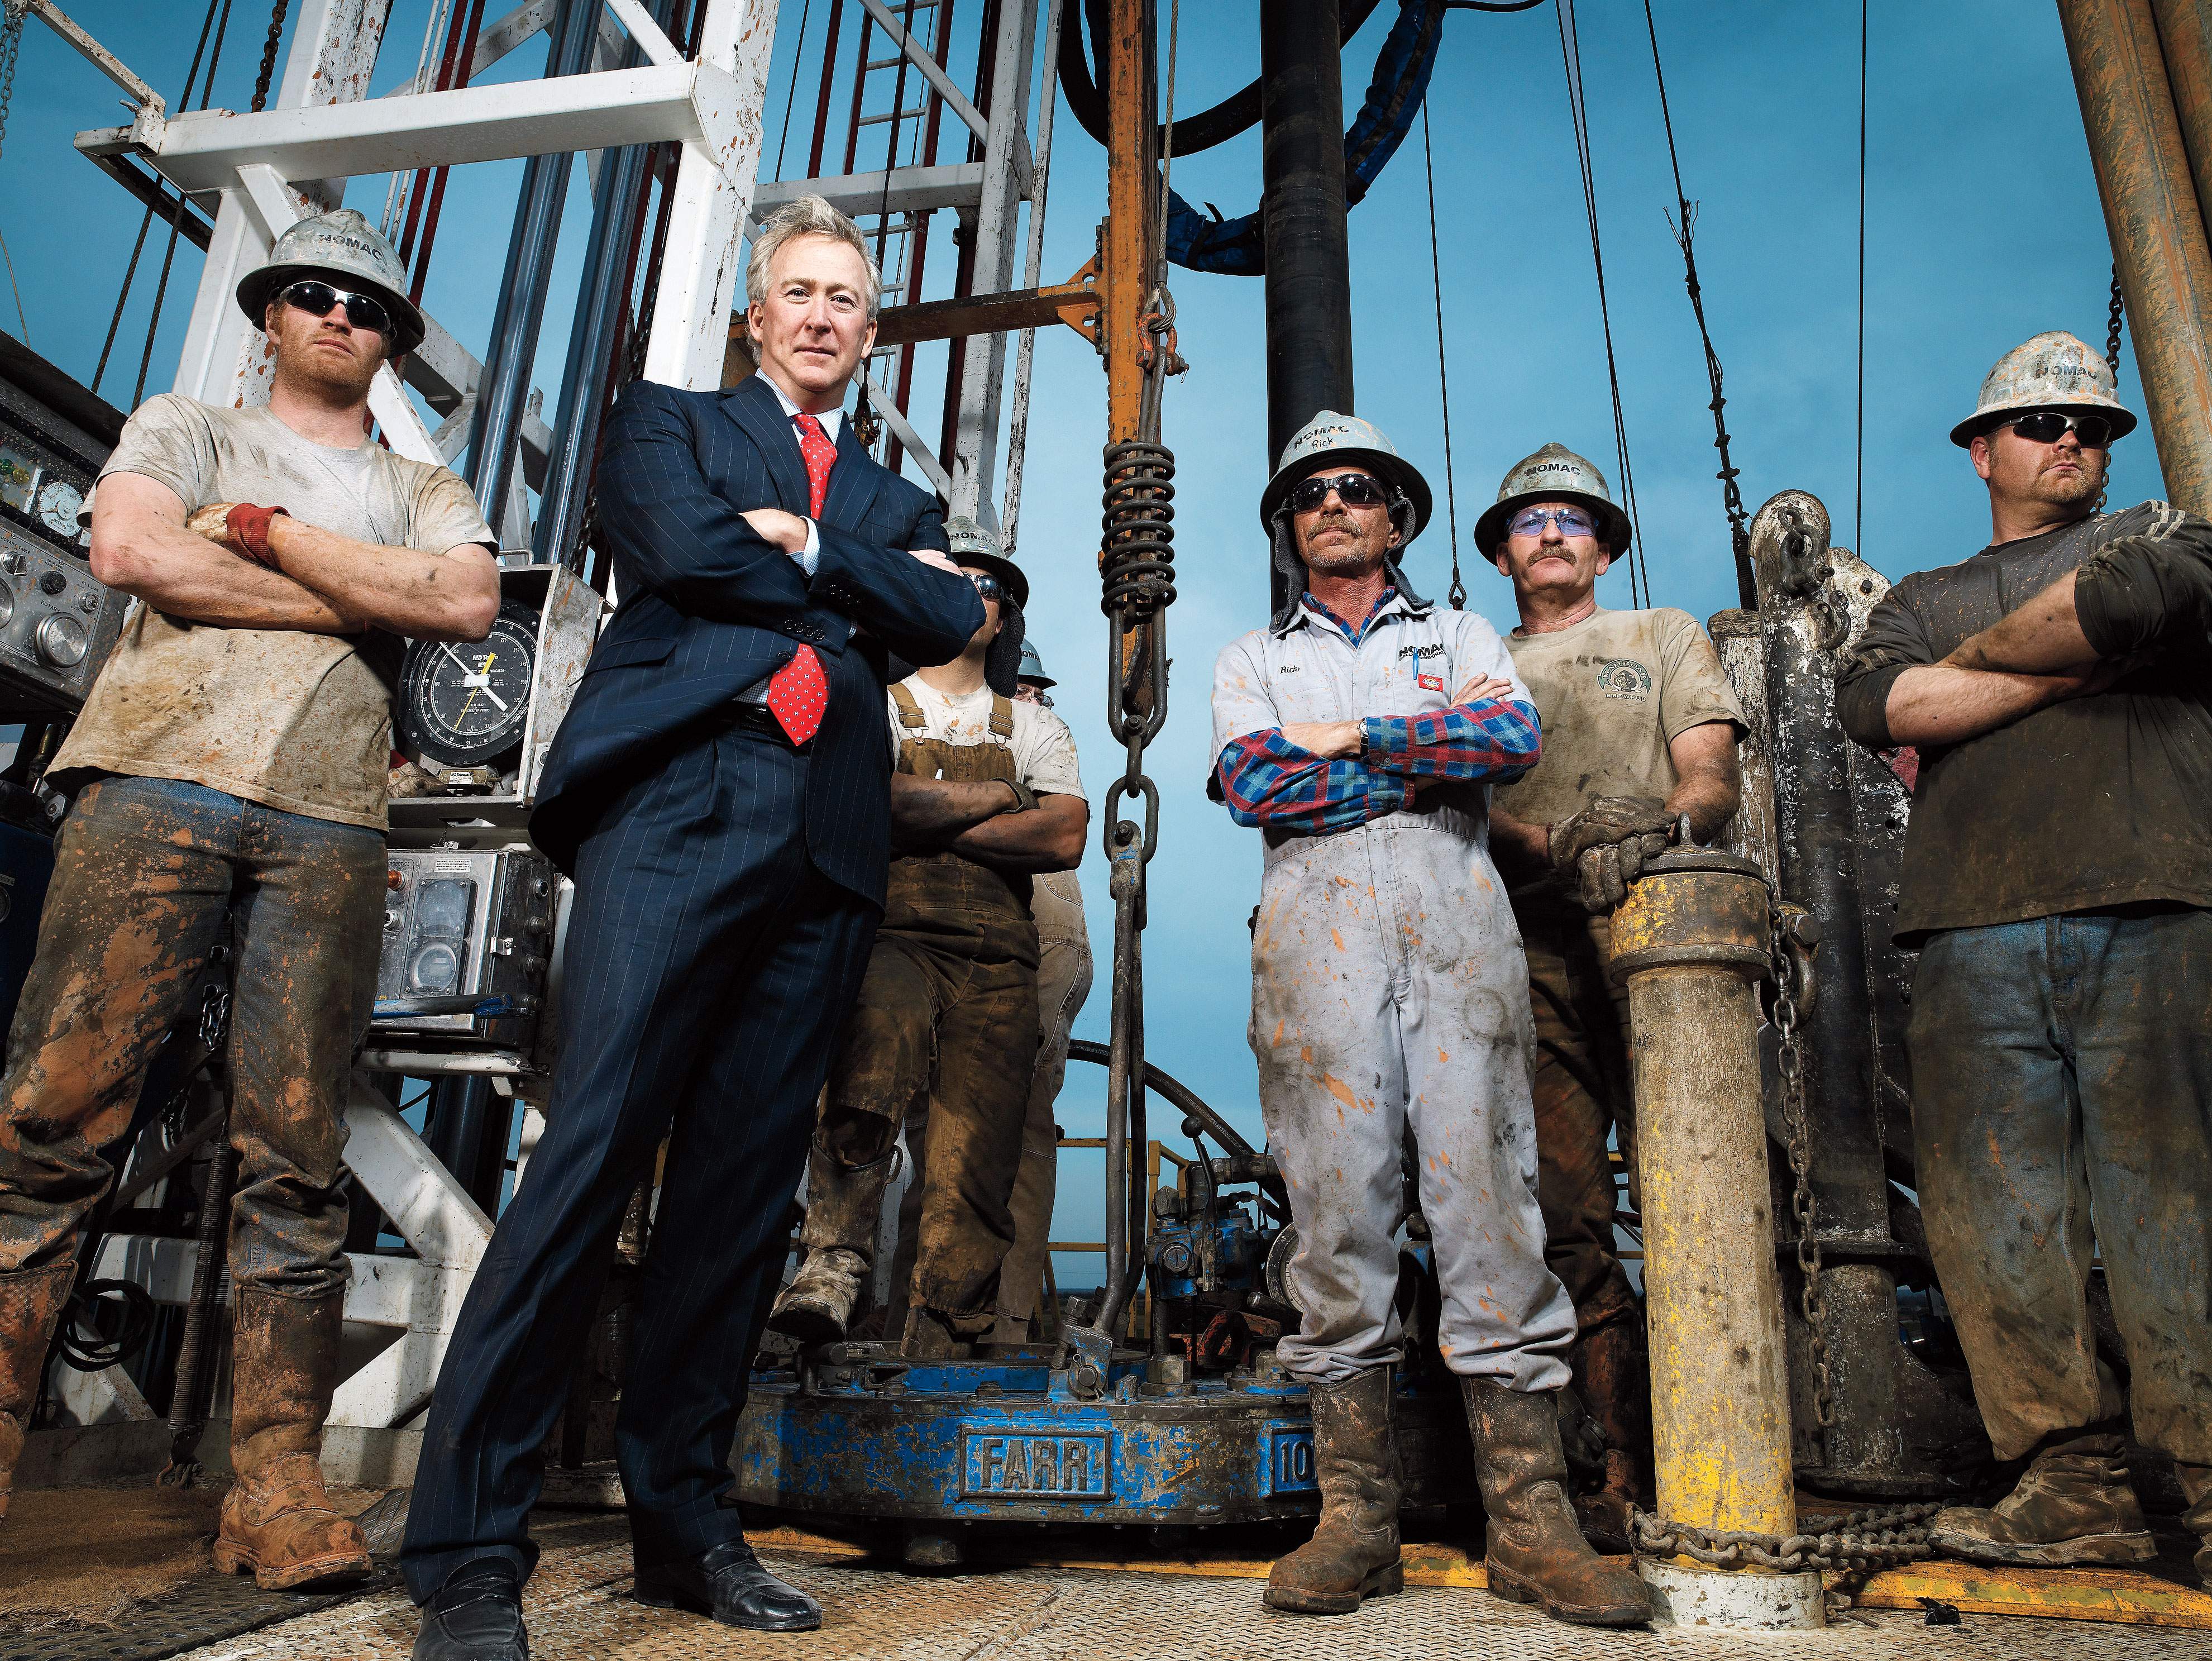 CEO OF CHESAPEAKE ENERGY, AUBREY MCCLENDON,  PHOTOGRAPHED WITH ROUGHNECKS ON NATURAL GAS RIG IN NORTHWEST OKLAHOMA COUNTY NEAR THE COMMUNITY OF PIEDMONT, OKLAHOMA.  PHOTOGRAPHED MARCH 2008.